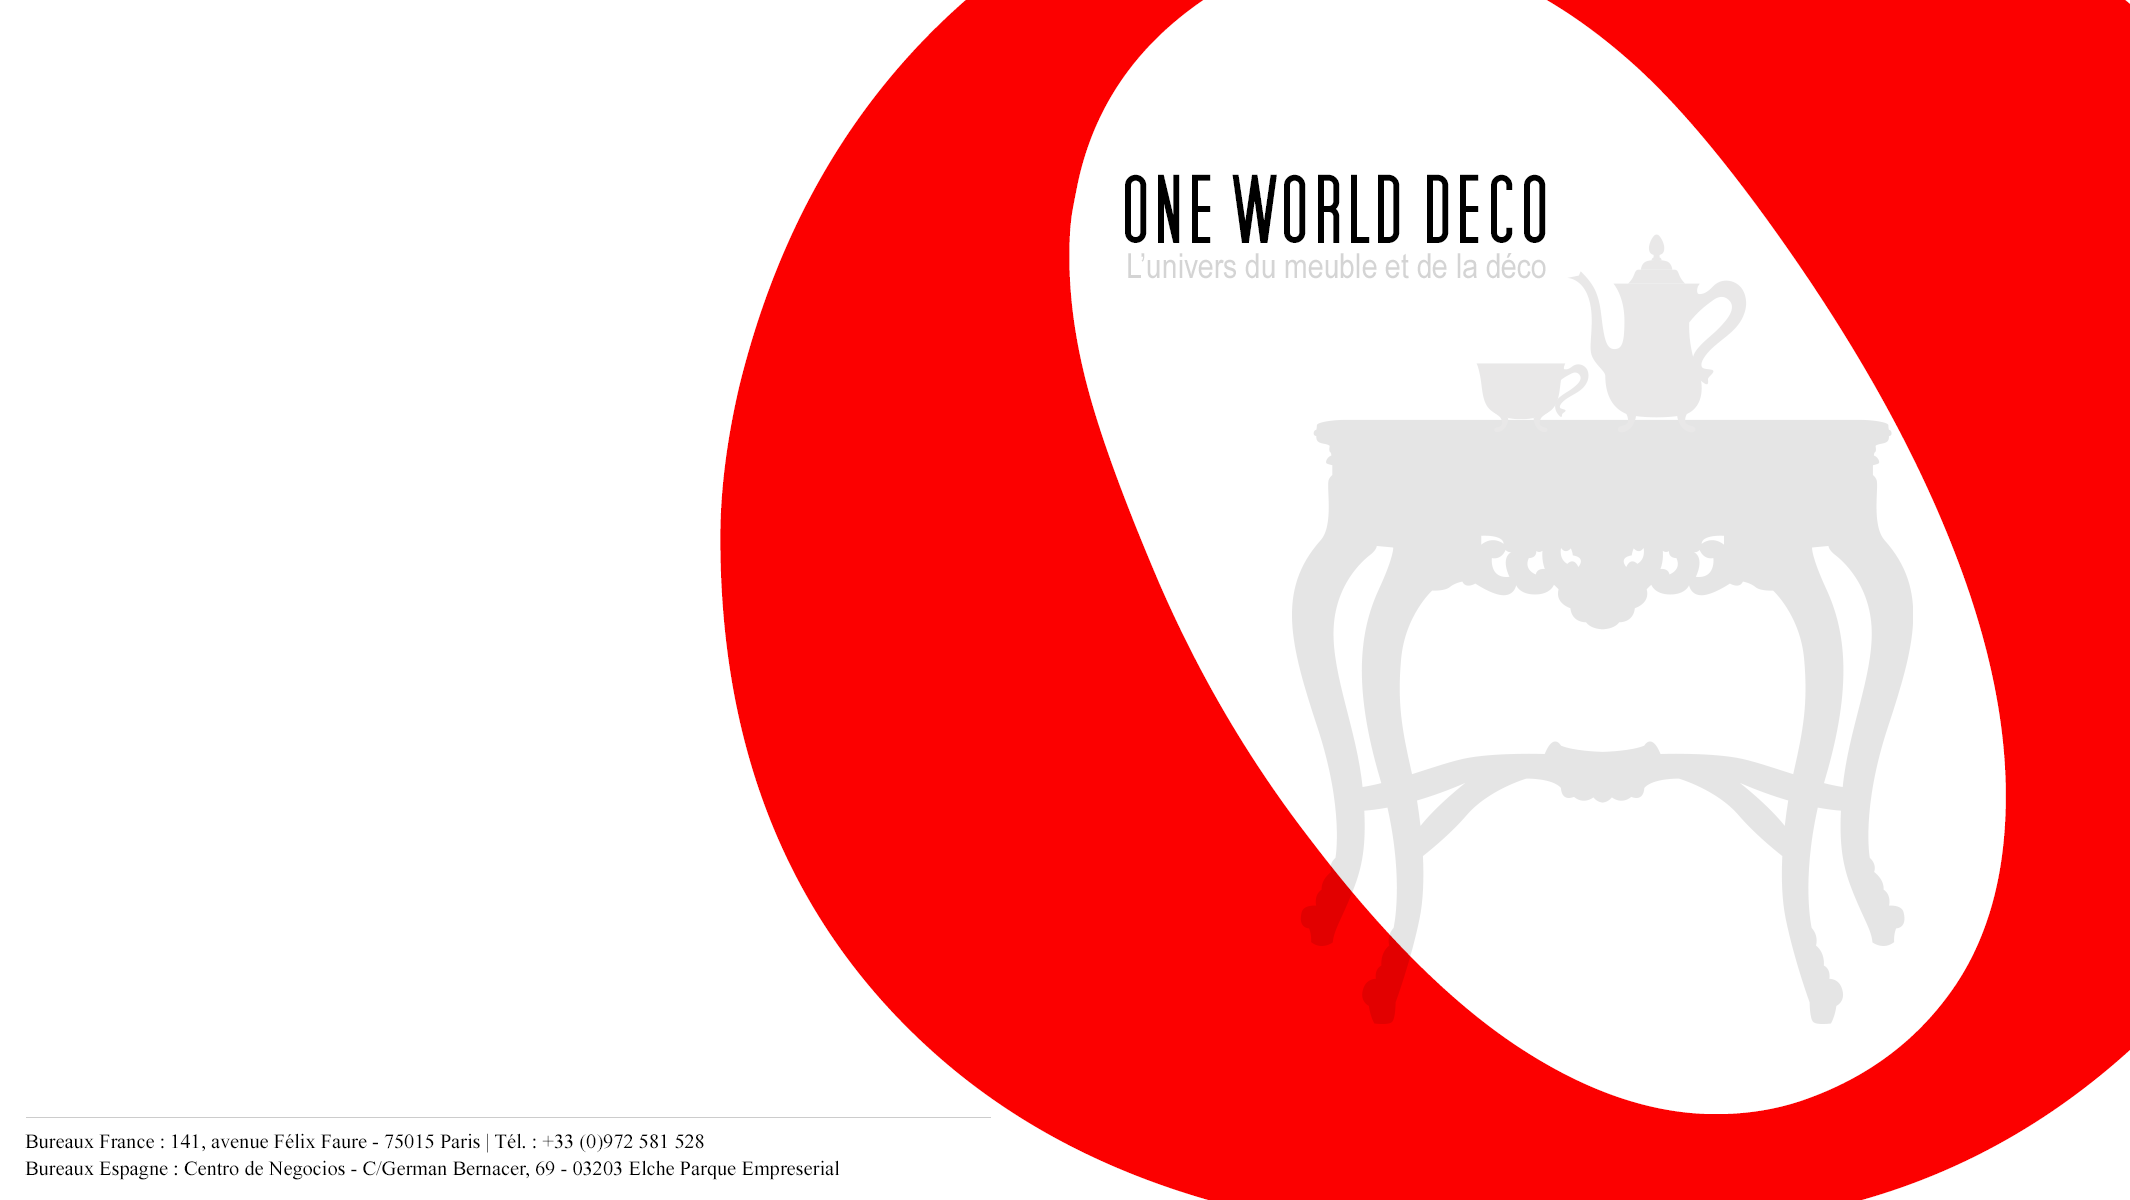 One World Deco